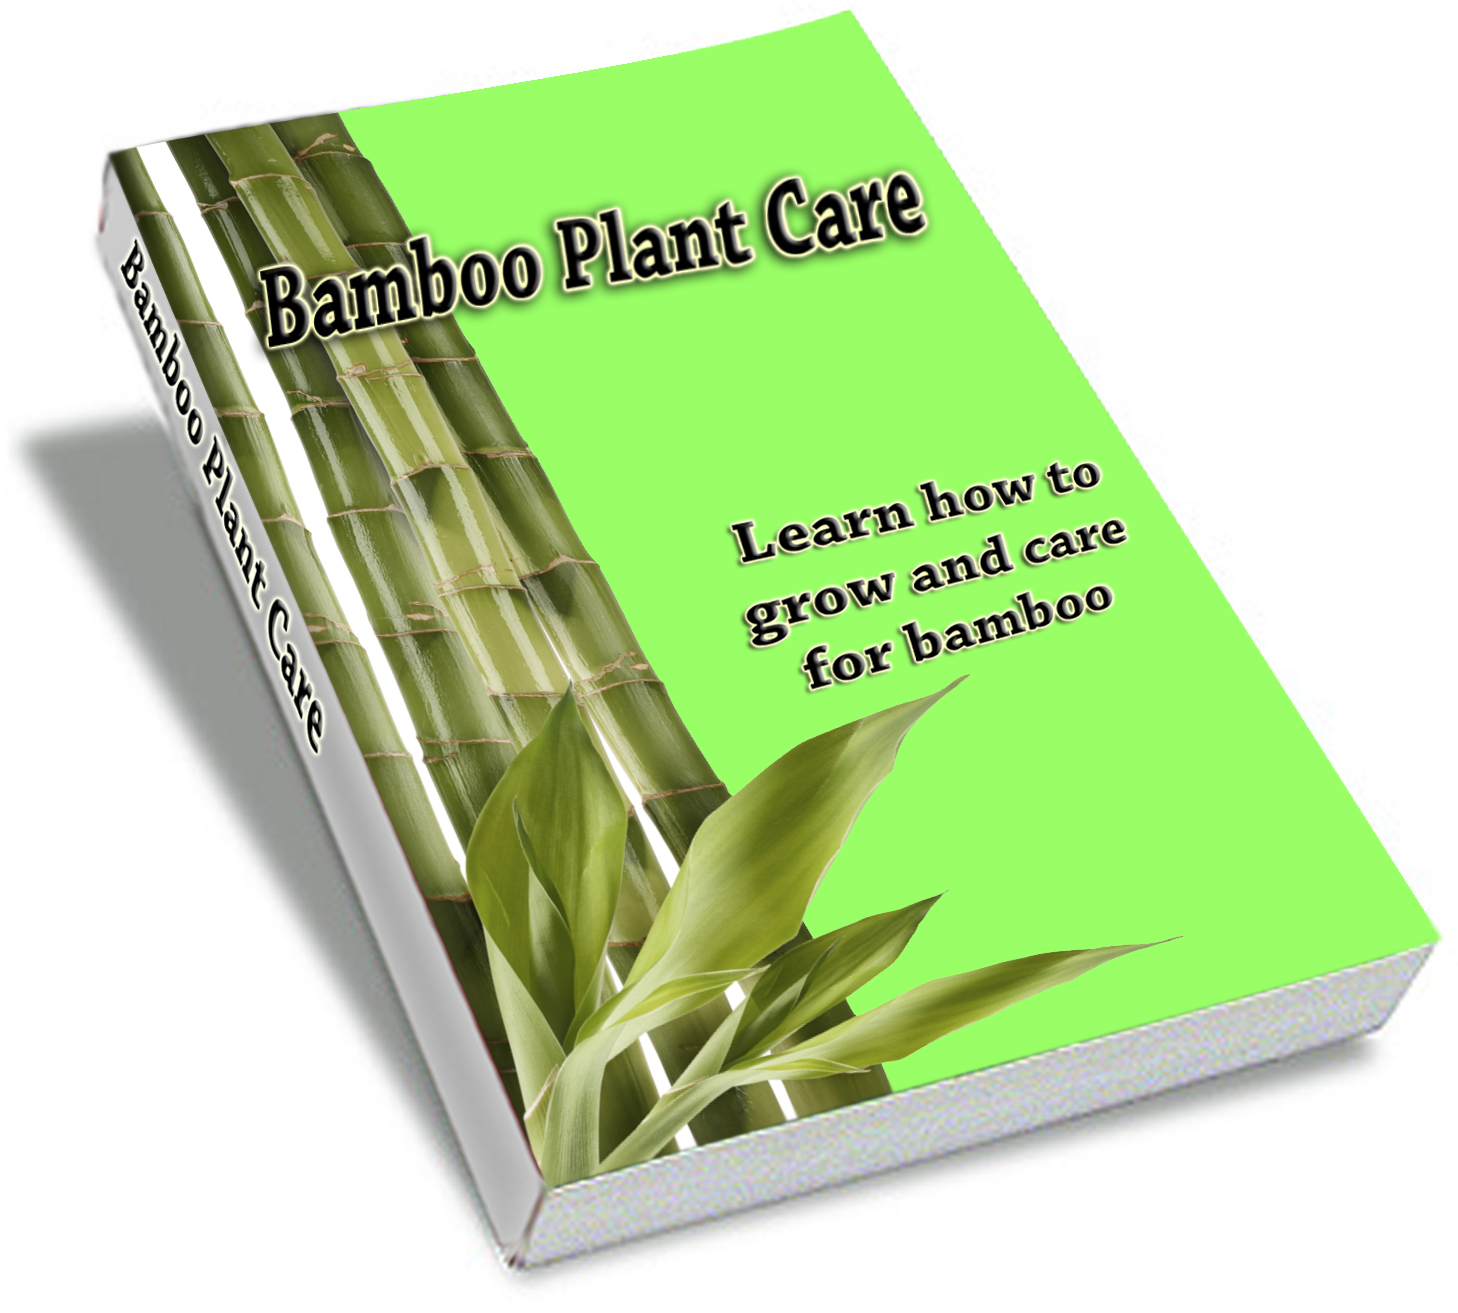 Bamboo Plant Care Guide - Learn How to Grow and Care for Bamboo